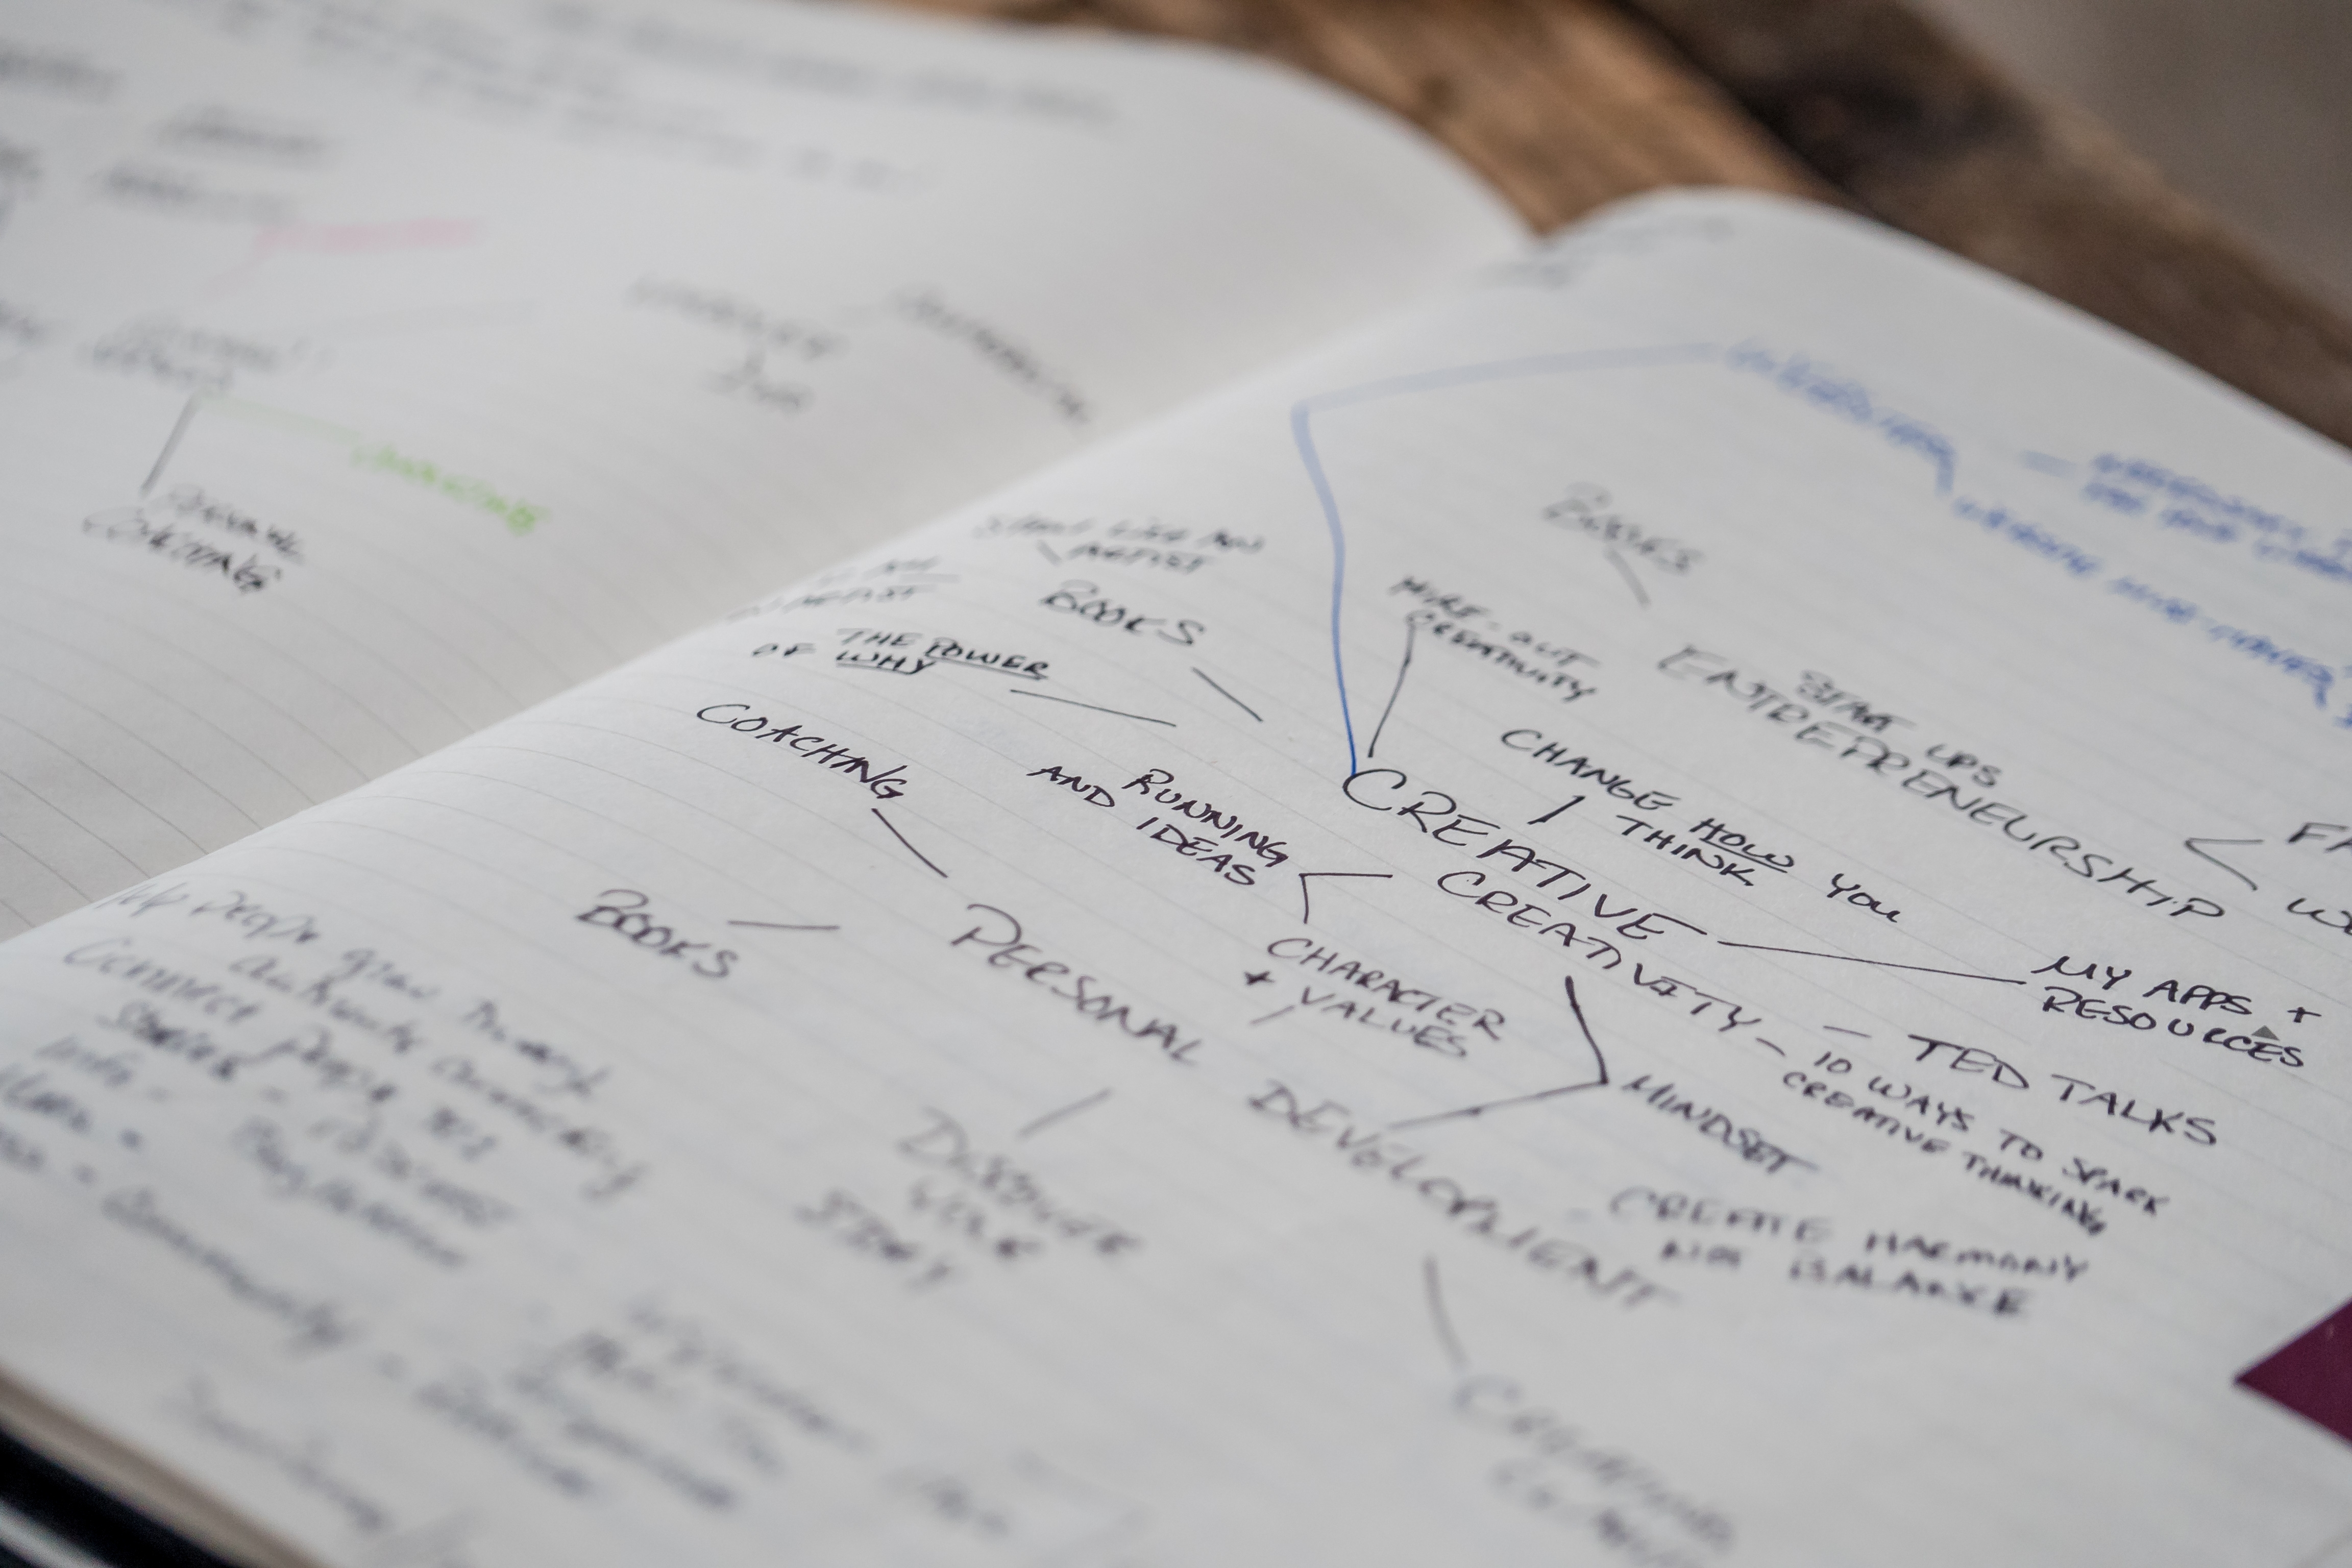 A notebook with a mind map of several ideas